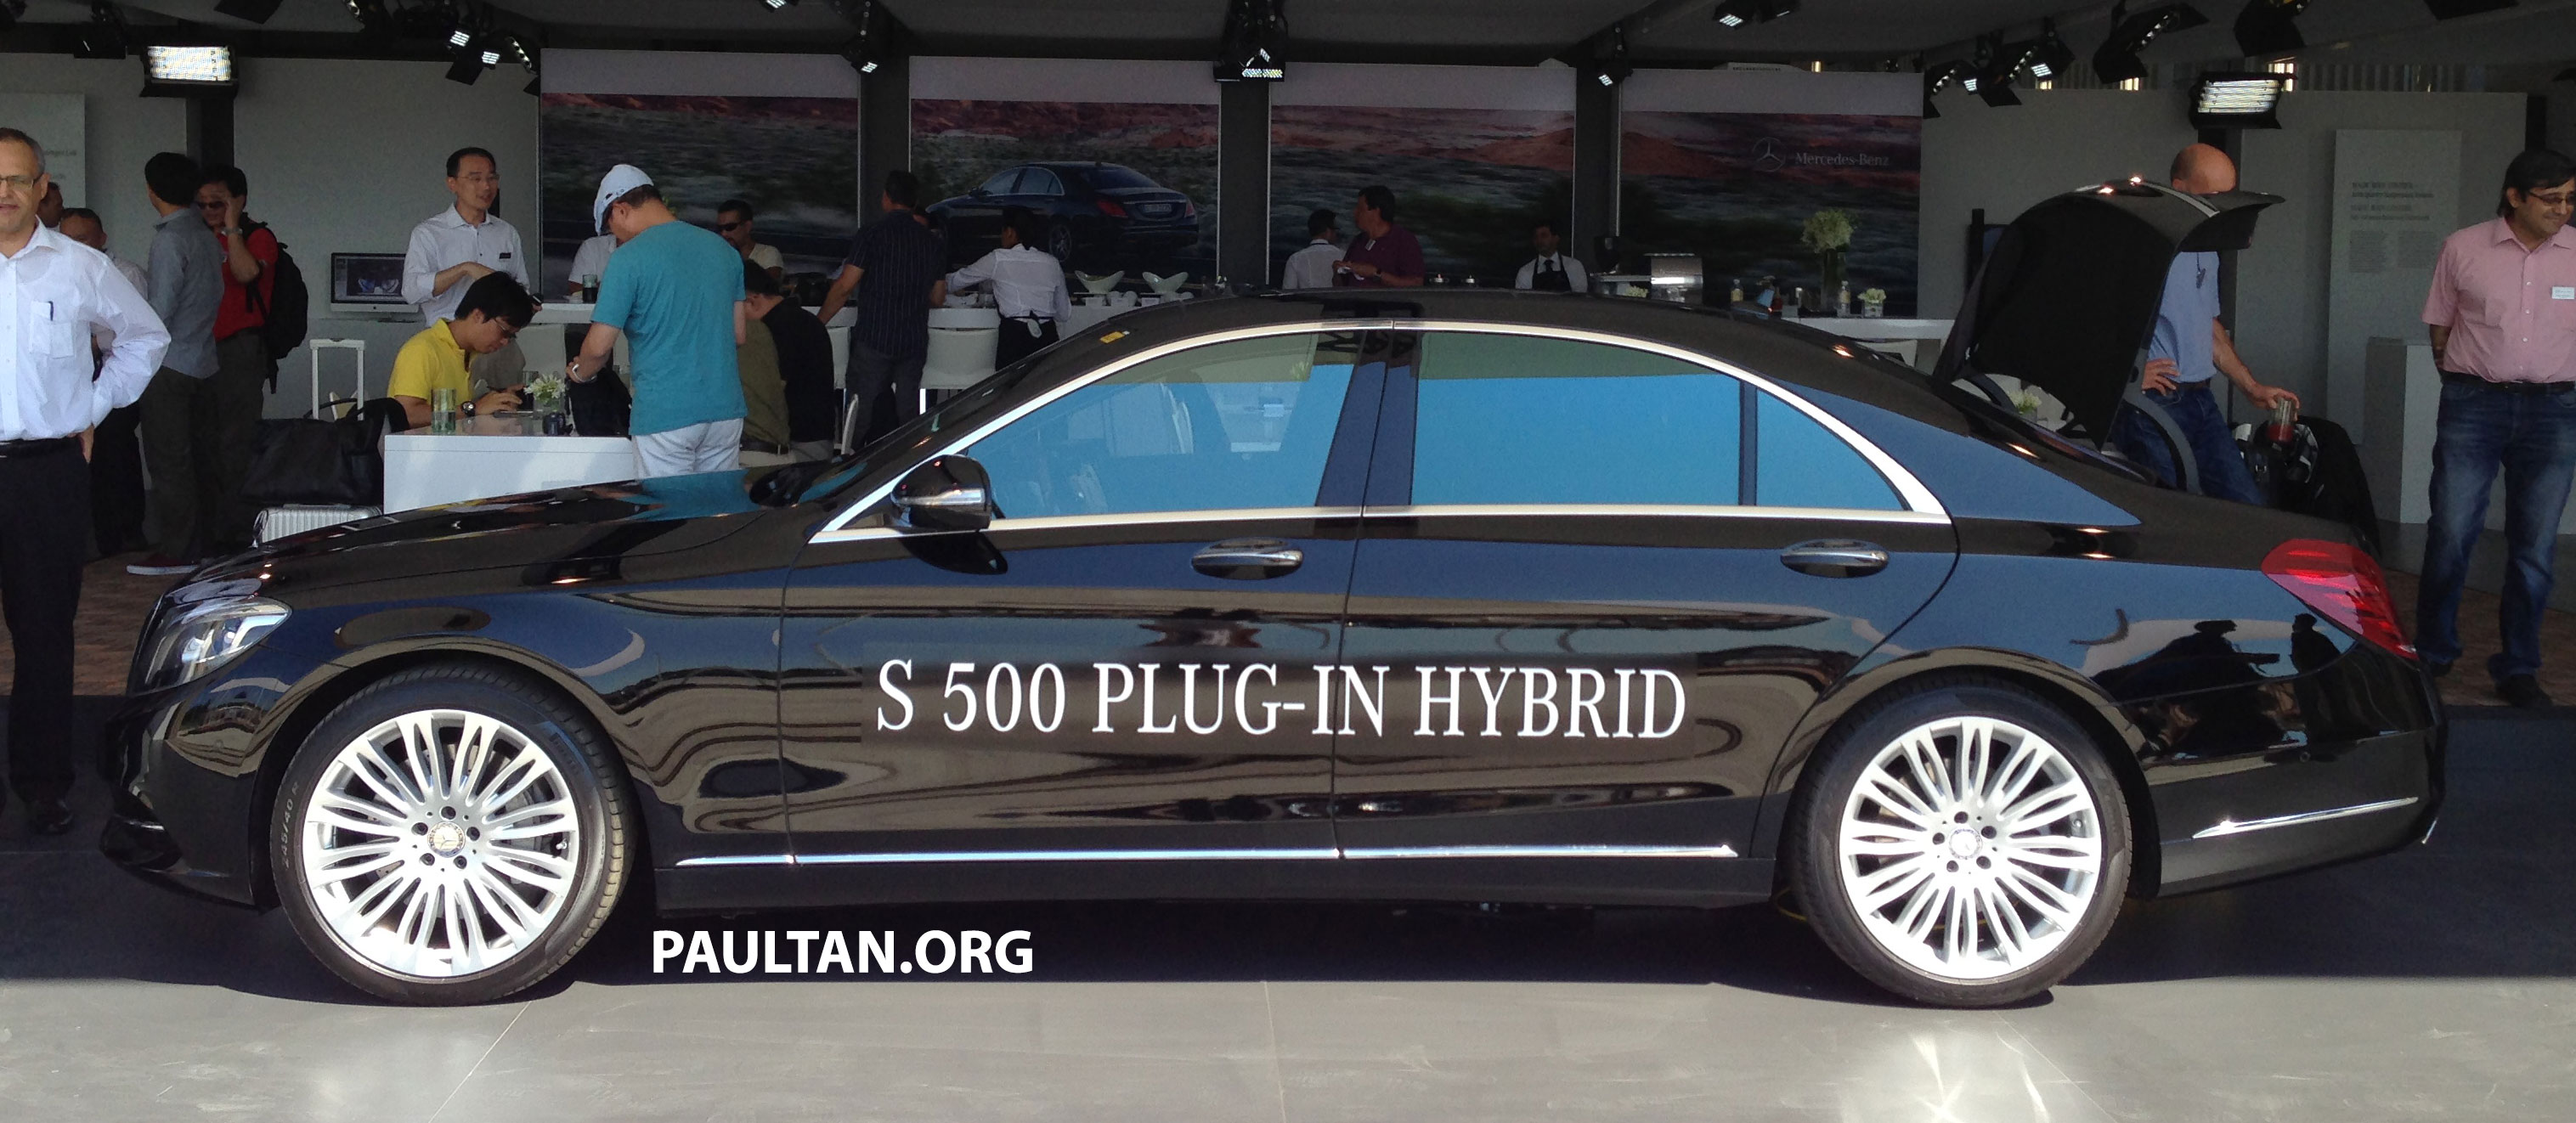 Mercedes Benz S500 Plugin Hybrid 00002 in addition 17 in addition New Vw Passat Cc Concept Previews Merc Cls Challenger Pictures together with File Symbol Electrical manipulation with electric motor on Vent also Nyc s1 3400. on electric motor